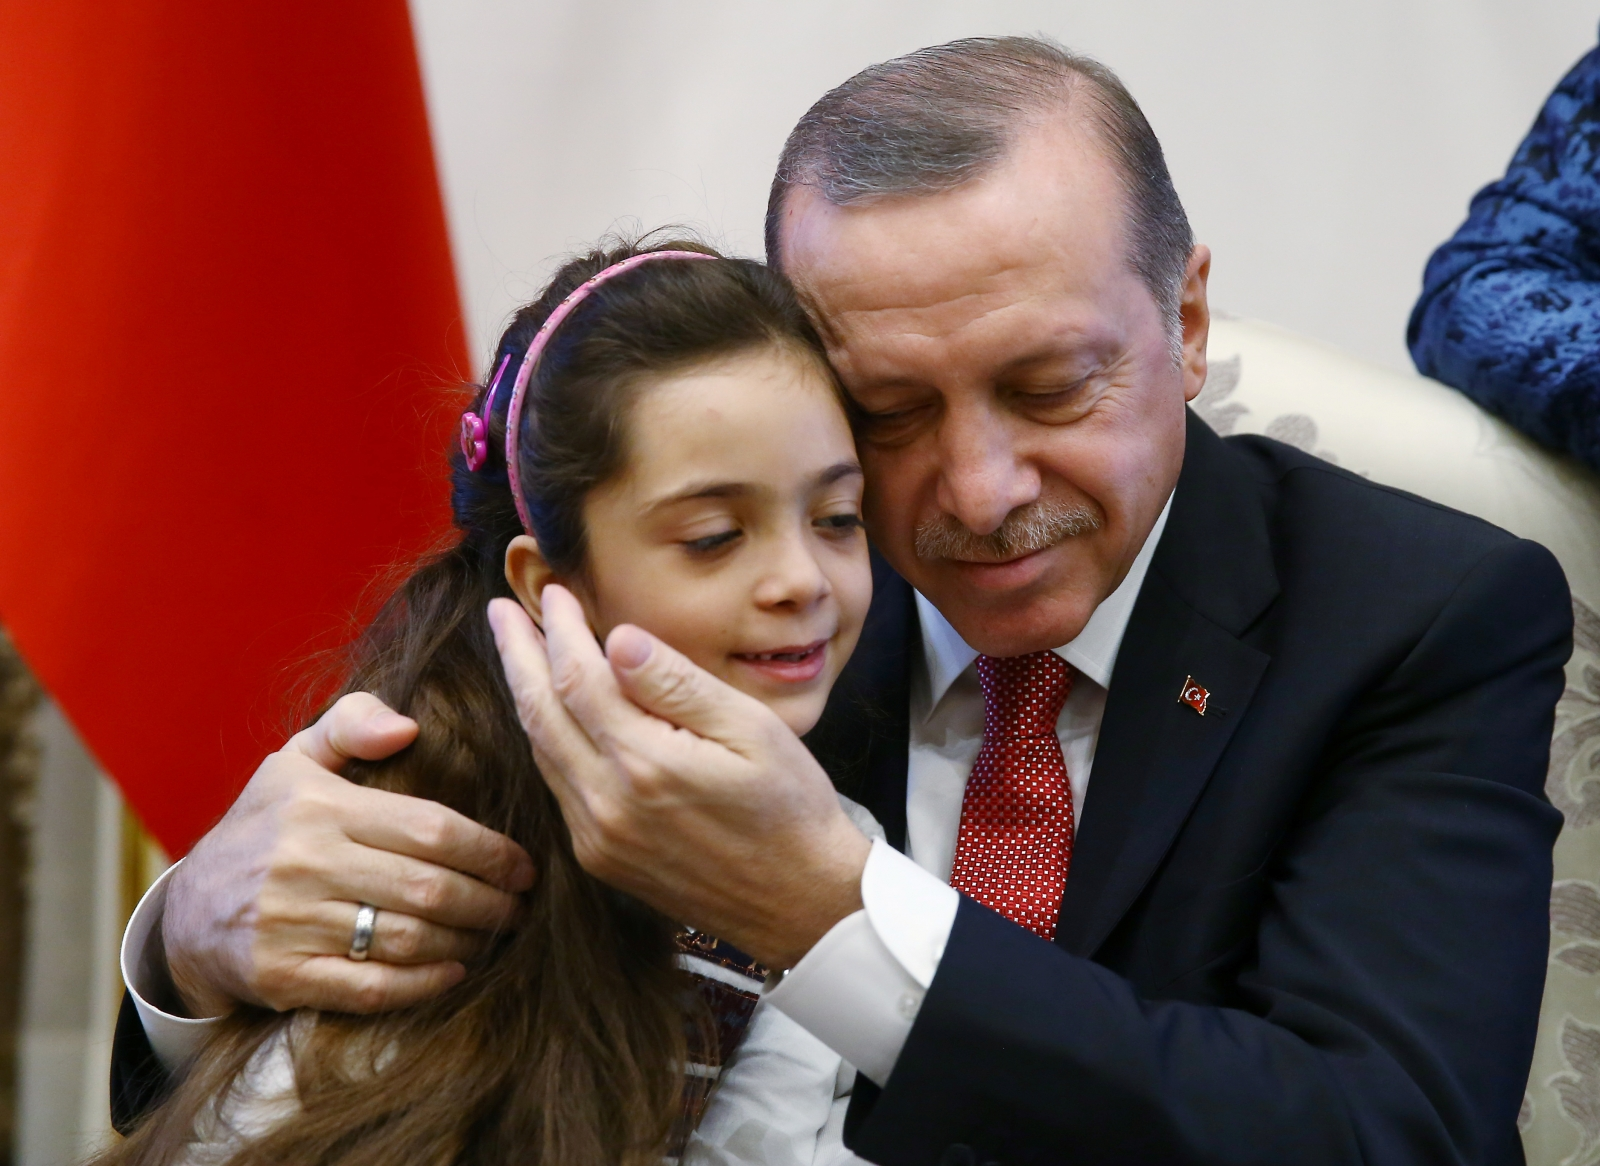 Bana Alabed meets President Erdogan